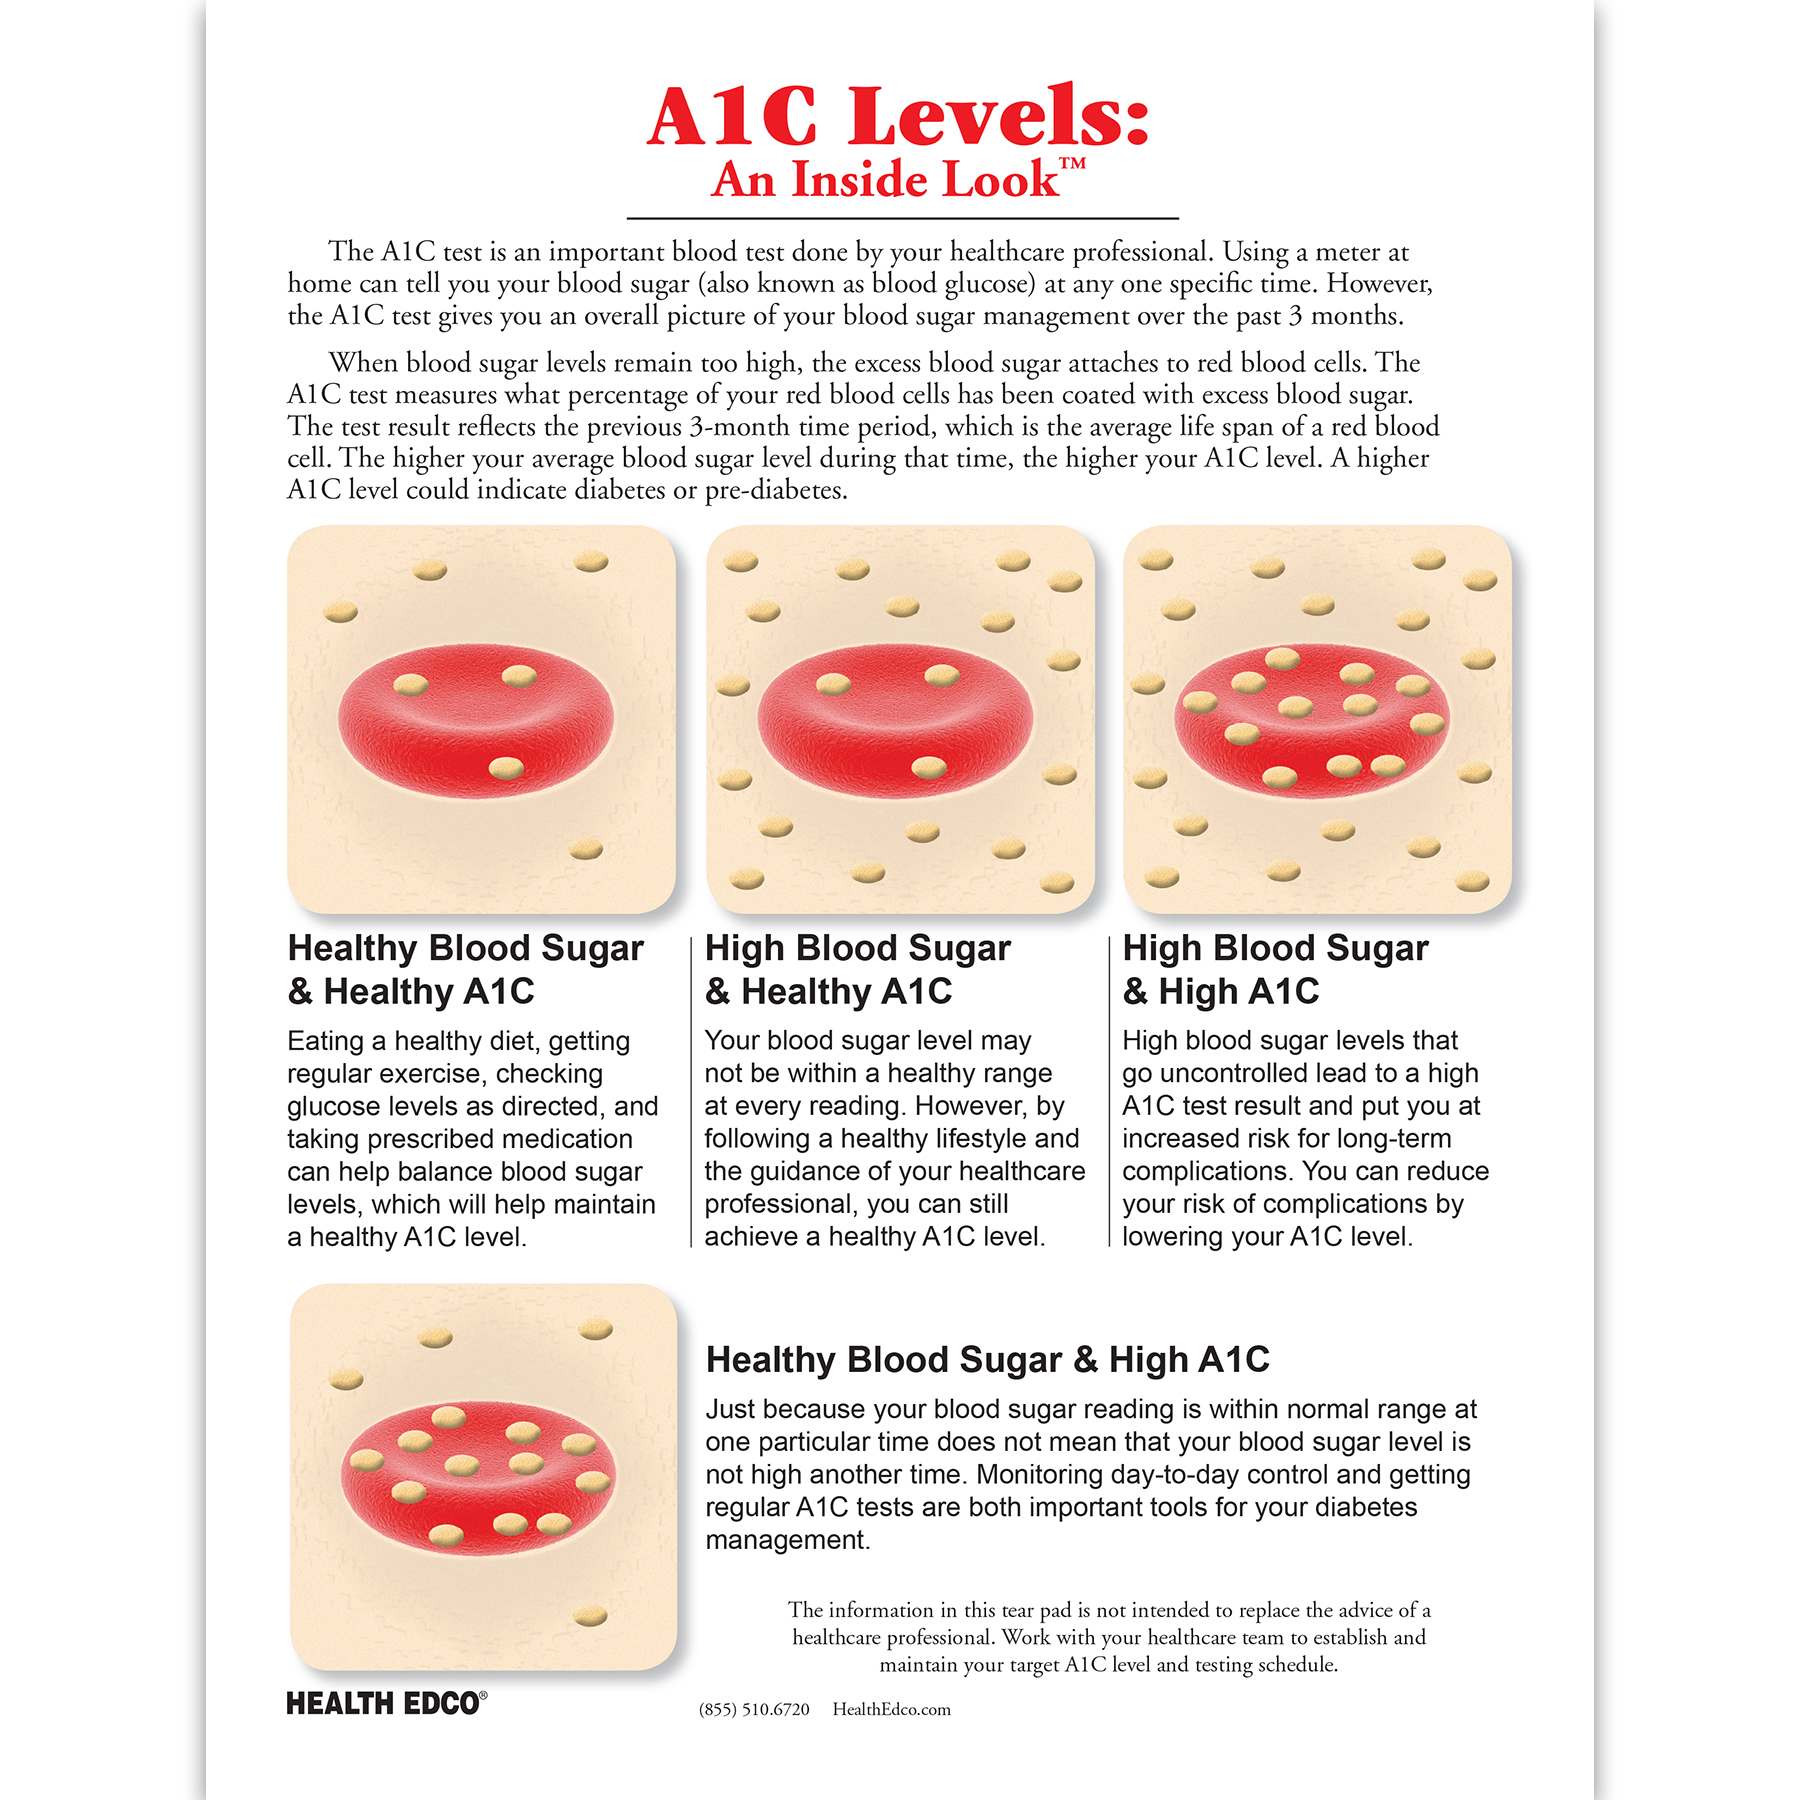 a1c levels & diabetes: an inside look tear pad | health edco